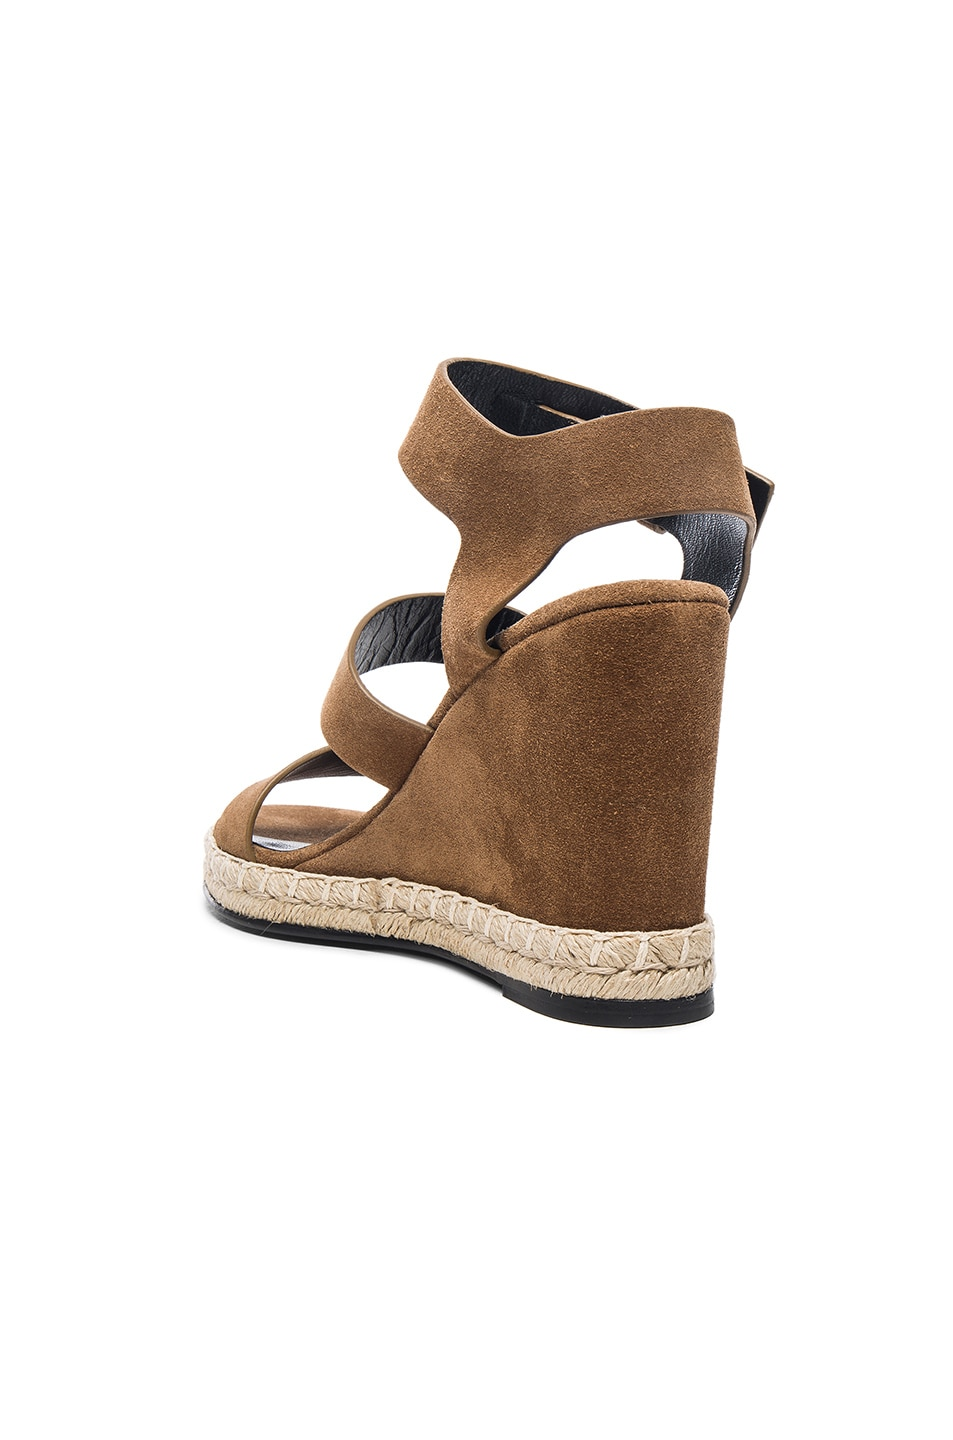 Image 3 of Balenciaga Suede Wedge Sandals in Noisette